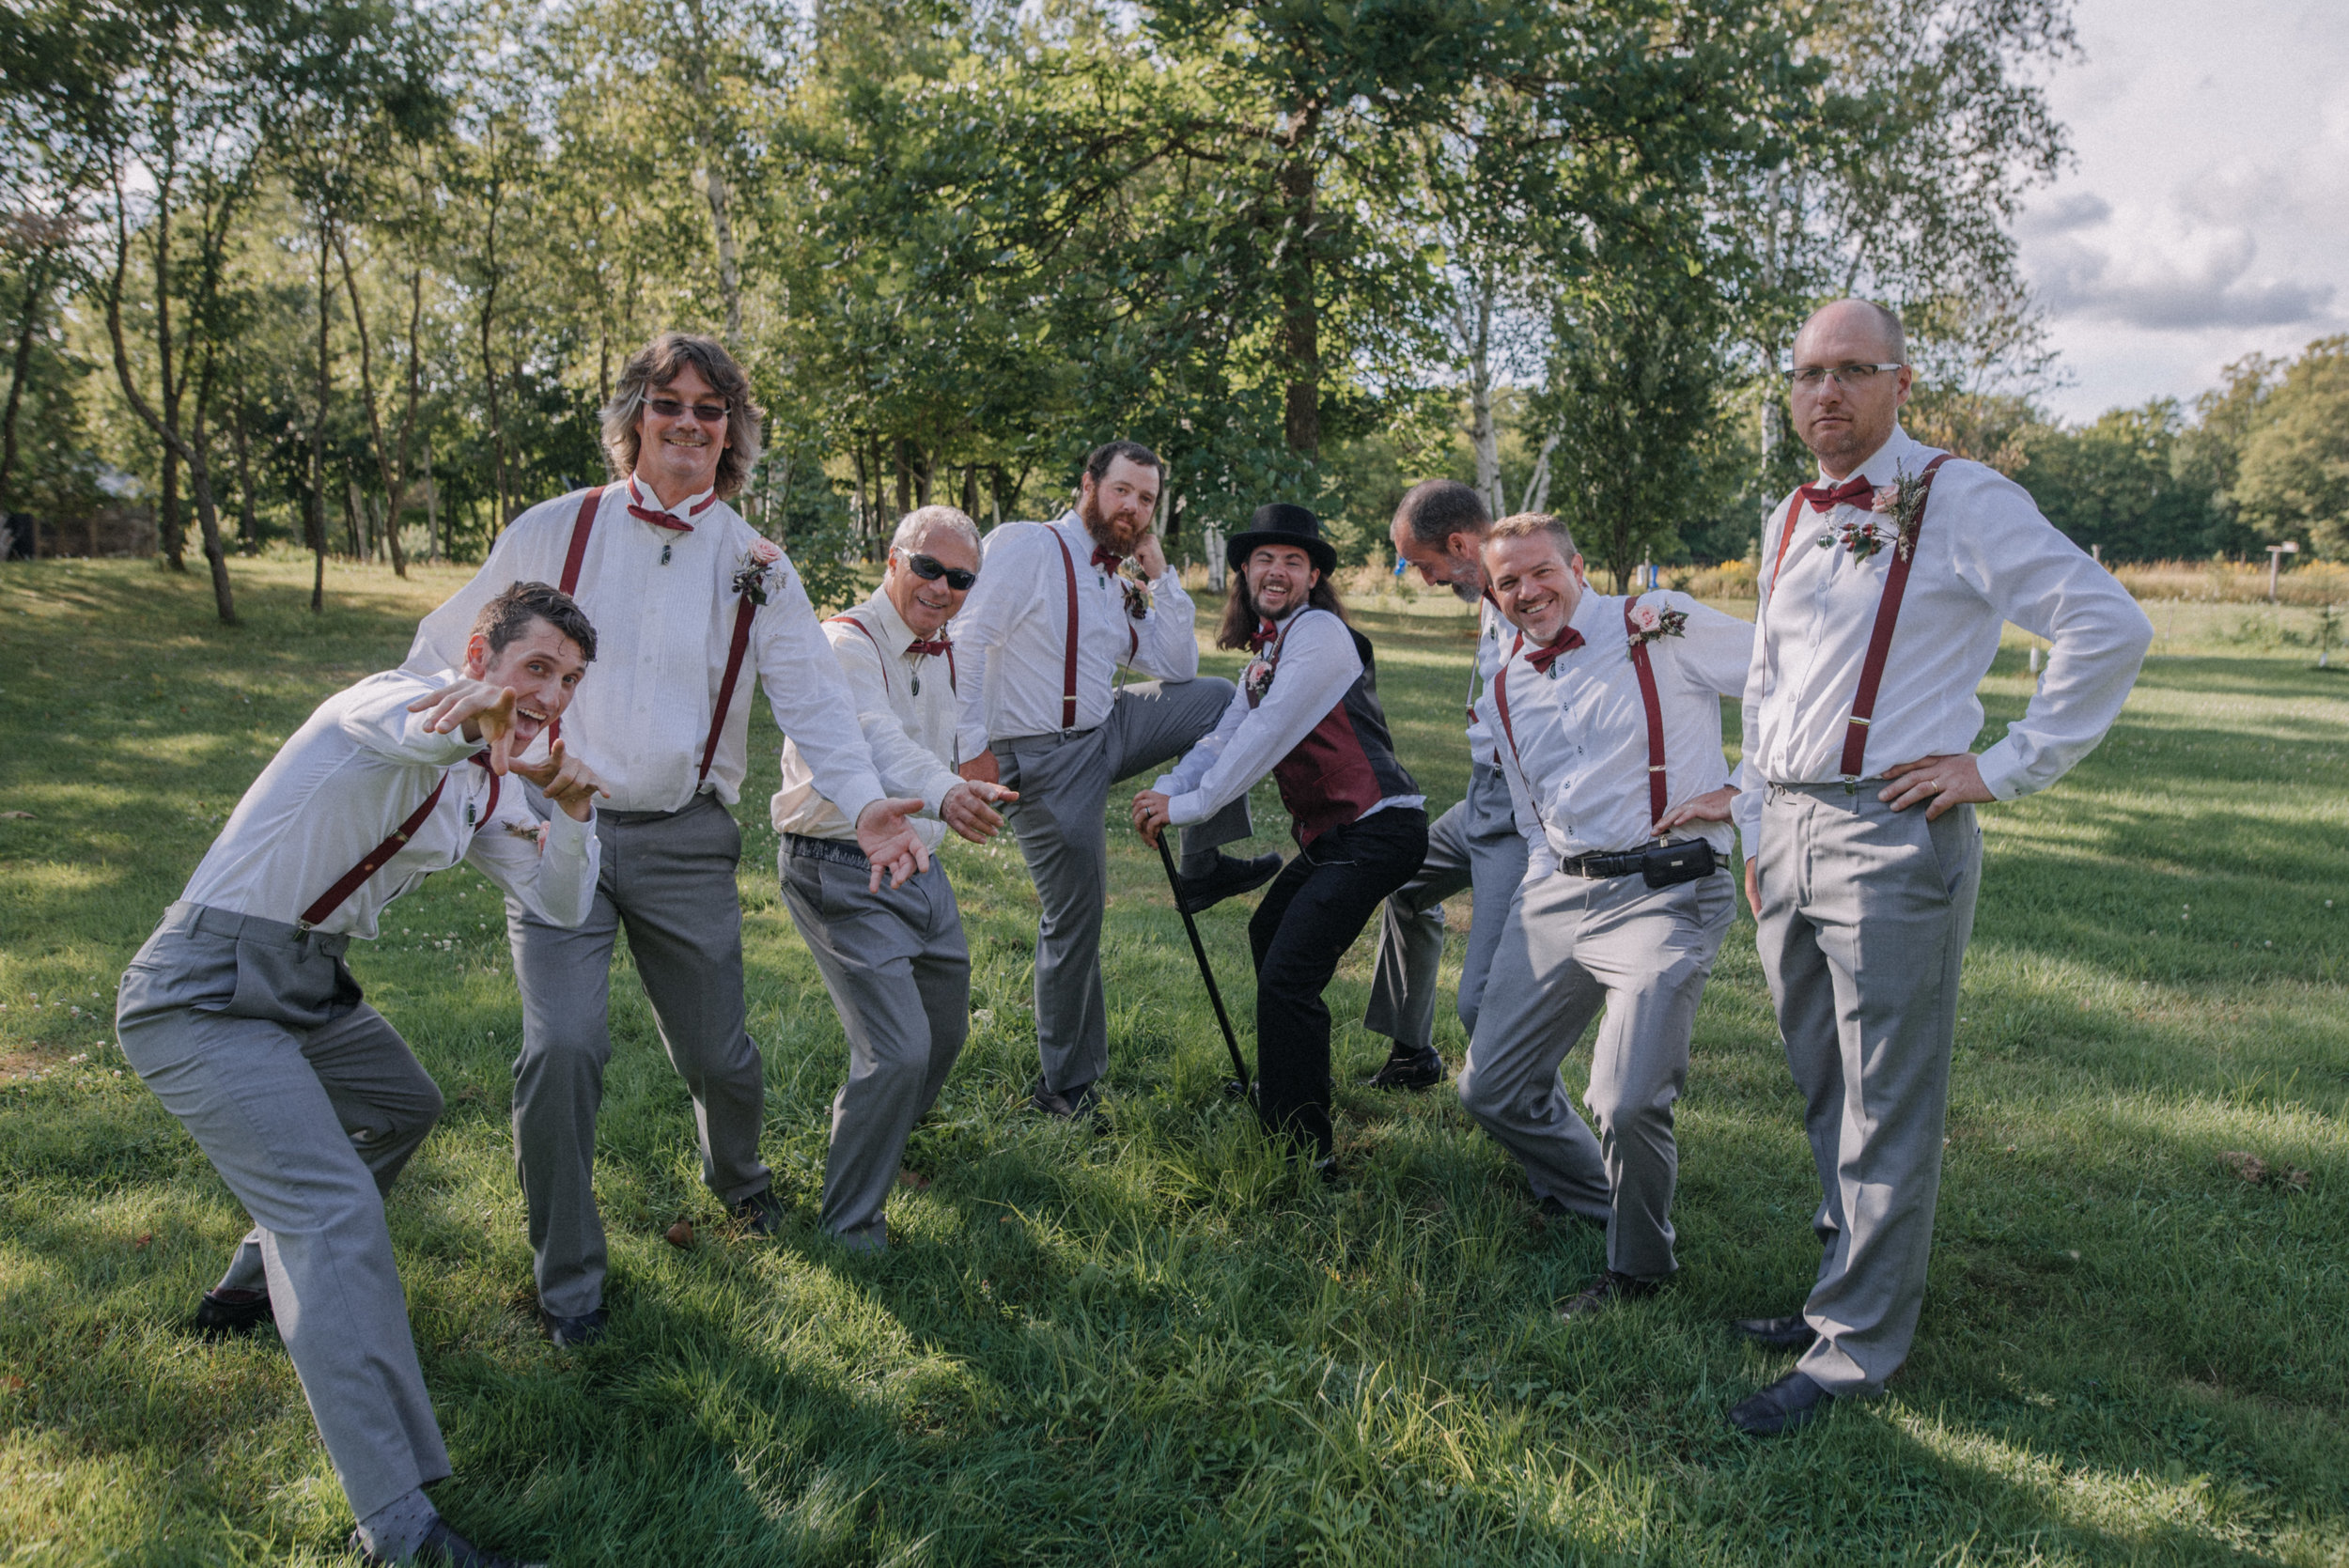 ottawa_wedding_photographer_gatineau_photographe_mariage_documentary_candid_photojournalist_natural_raw_boho_wedding_backyard (29).JPG